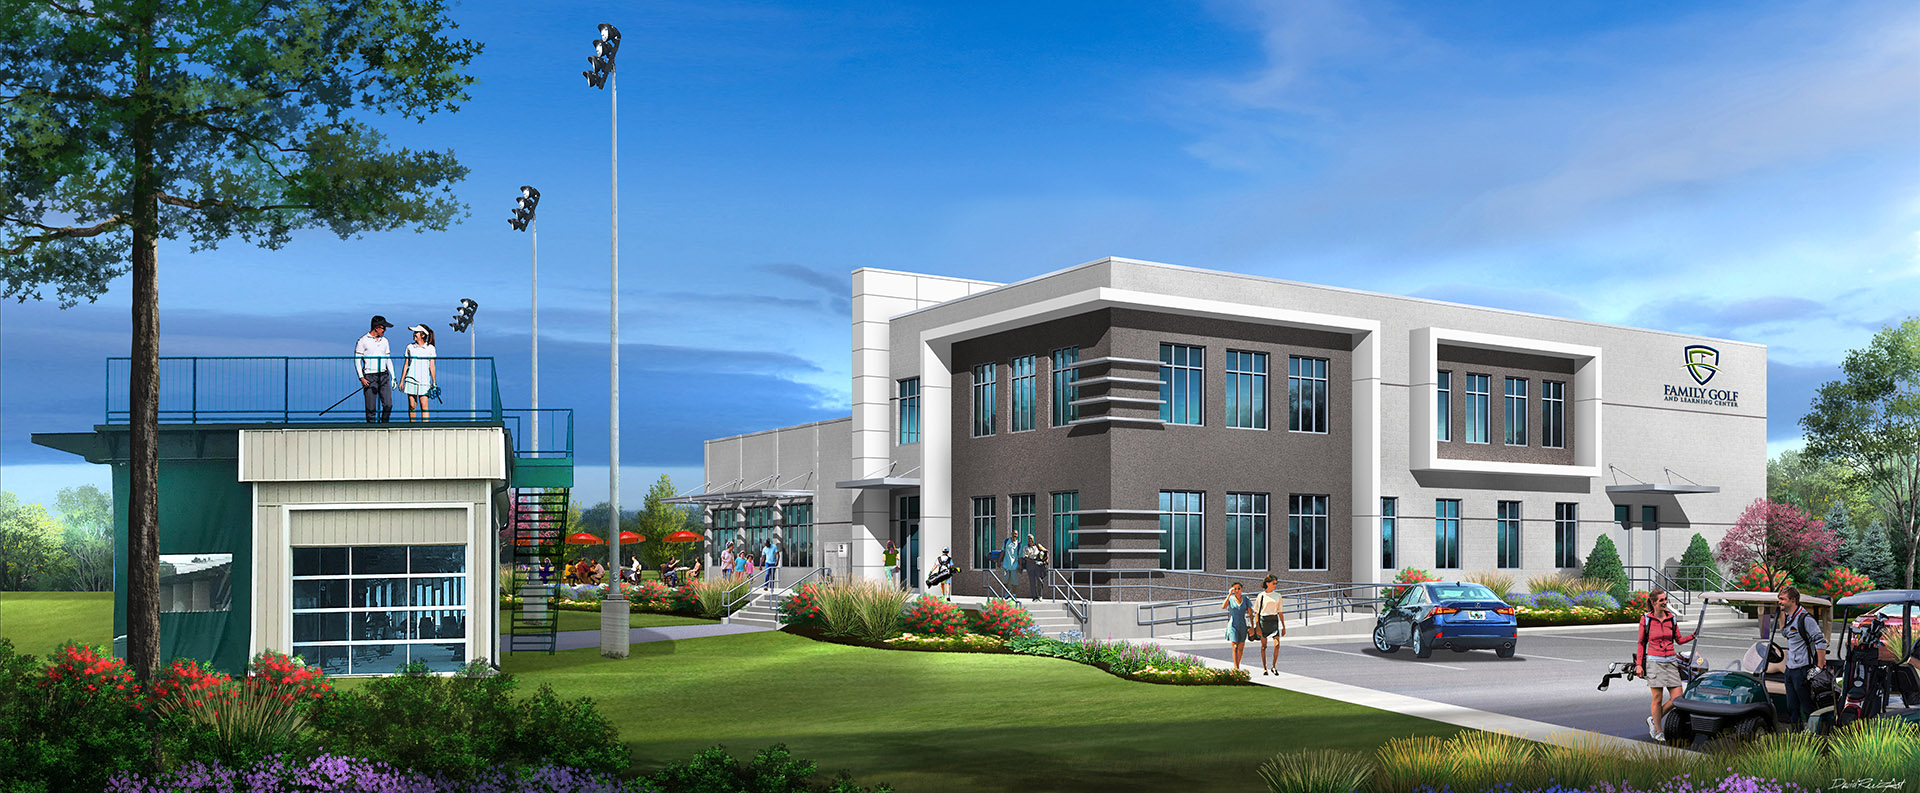 New clubhouse coming soon in 2020!